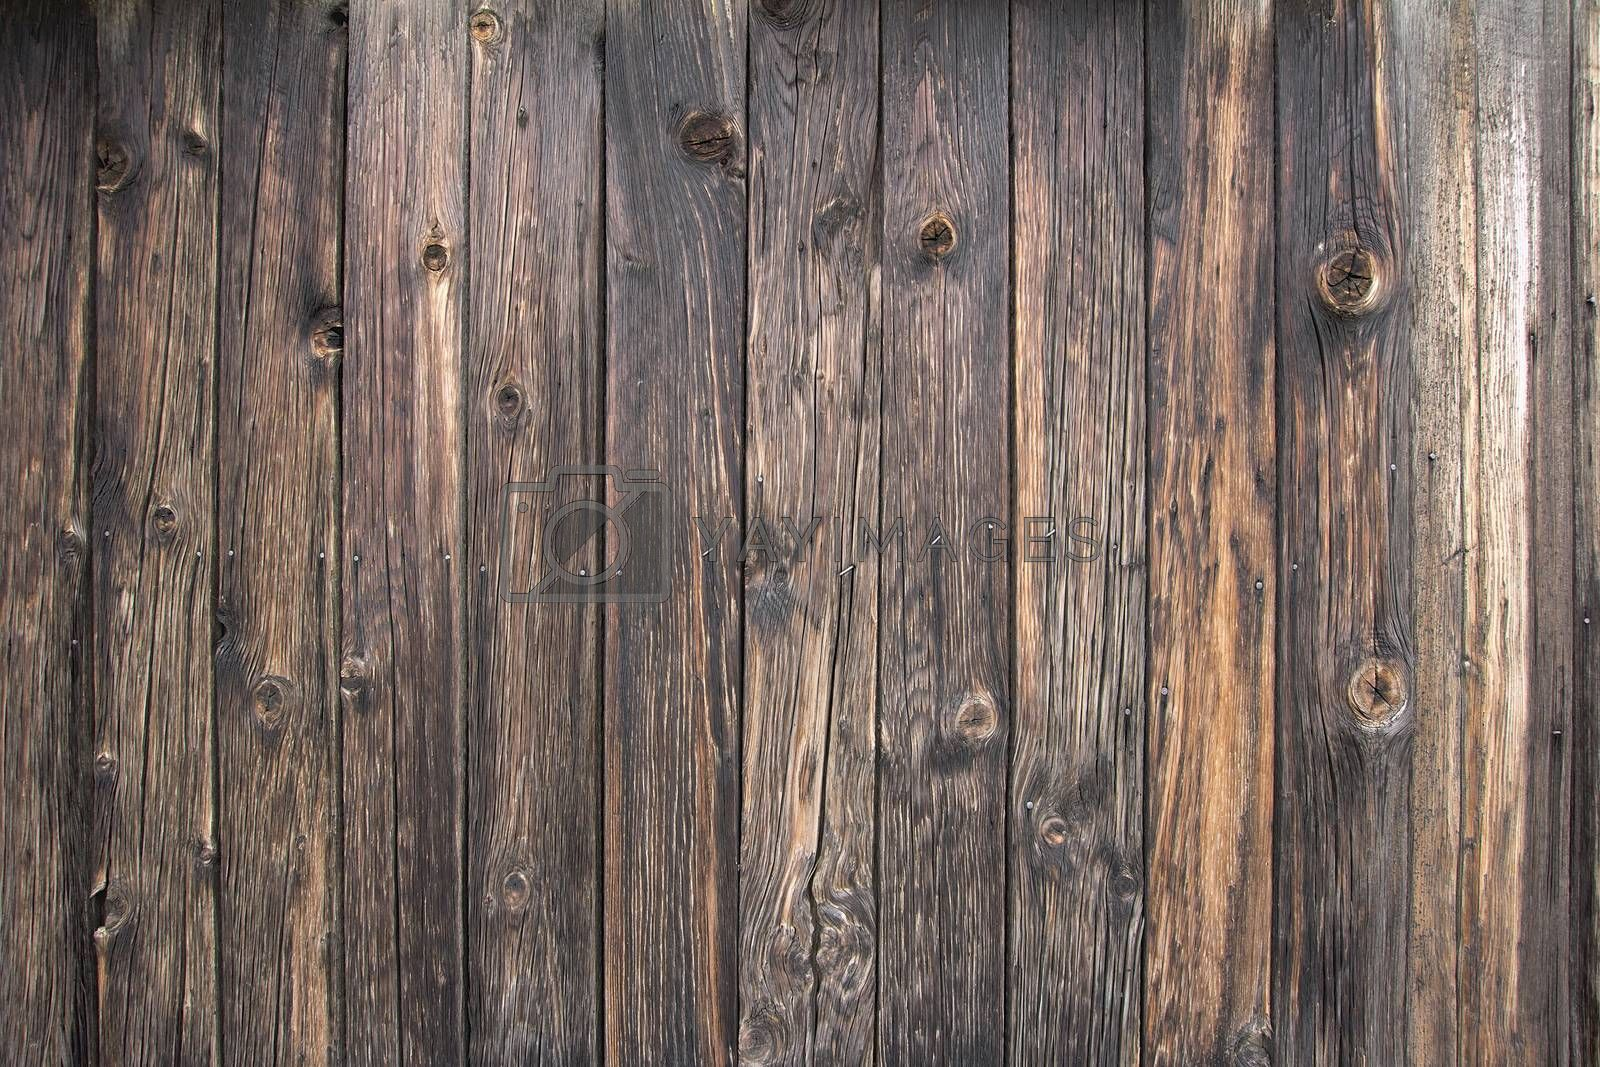 Royalty free image of Old Wood Shack Exterior Background by jpldesigns